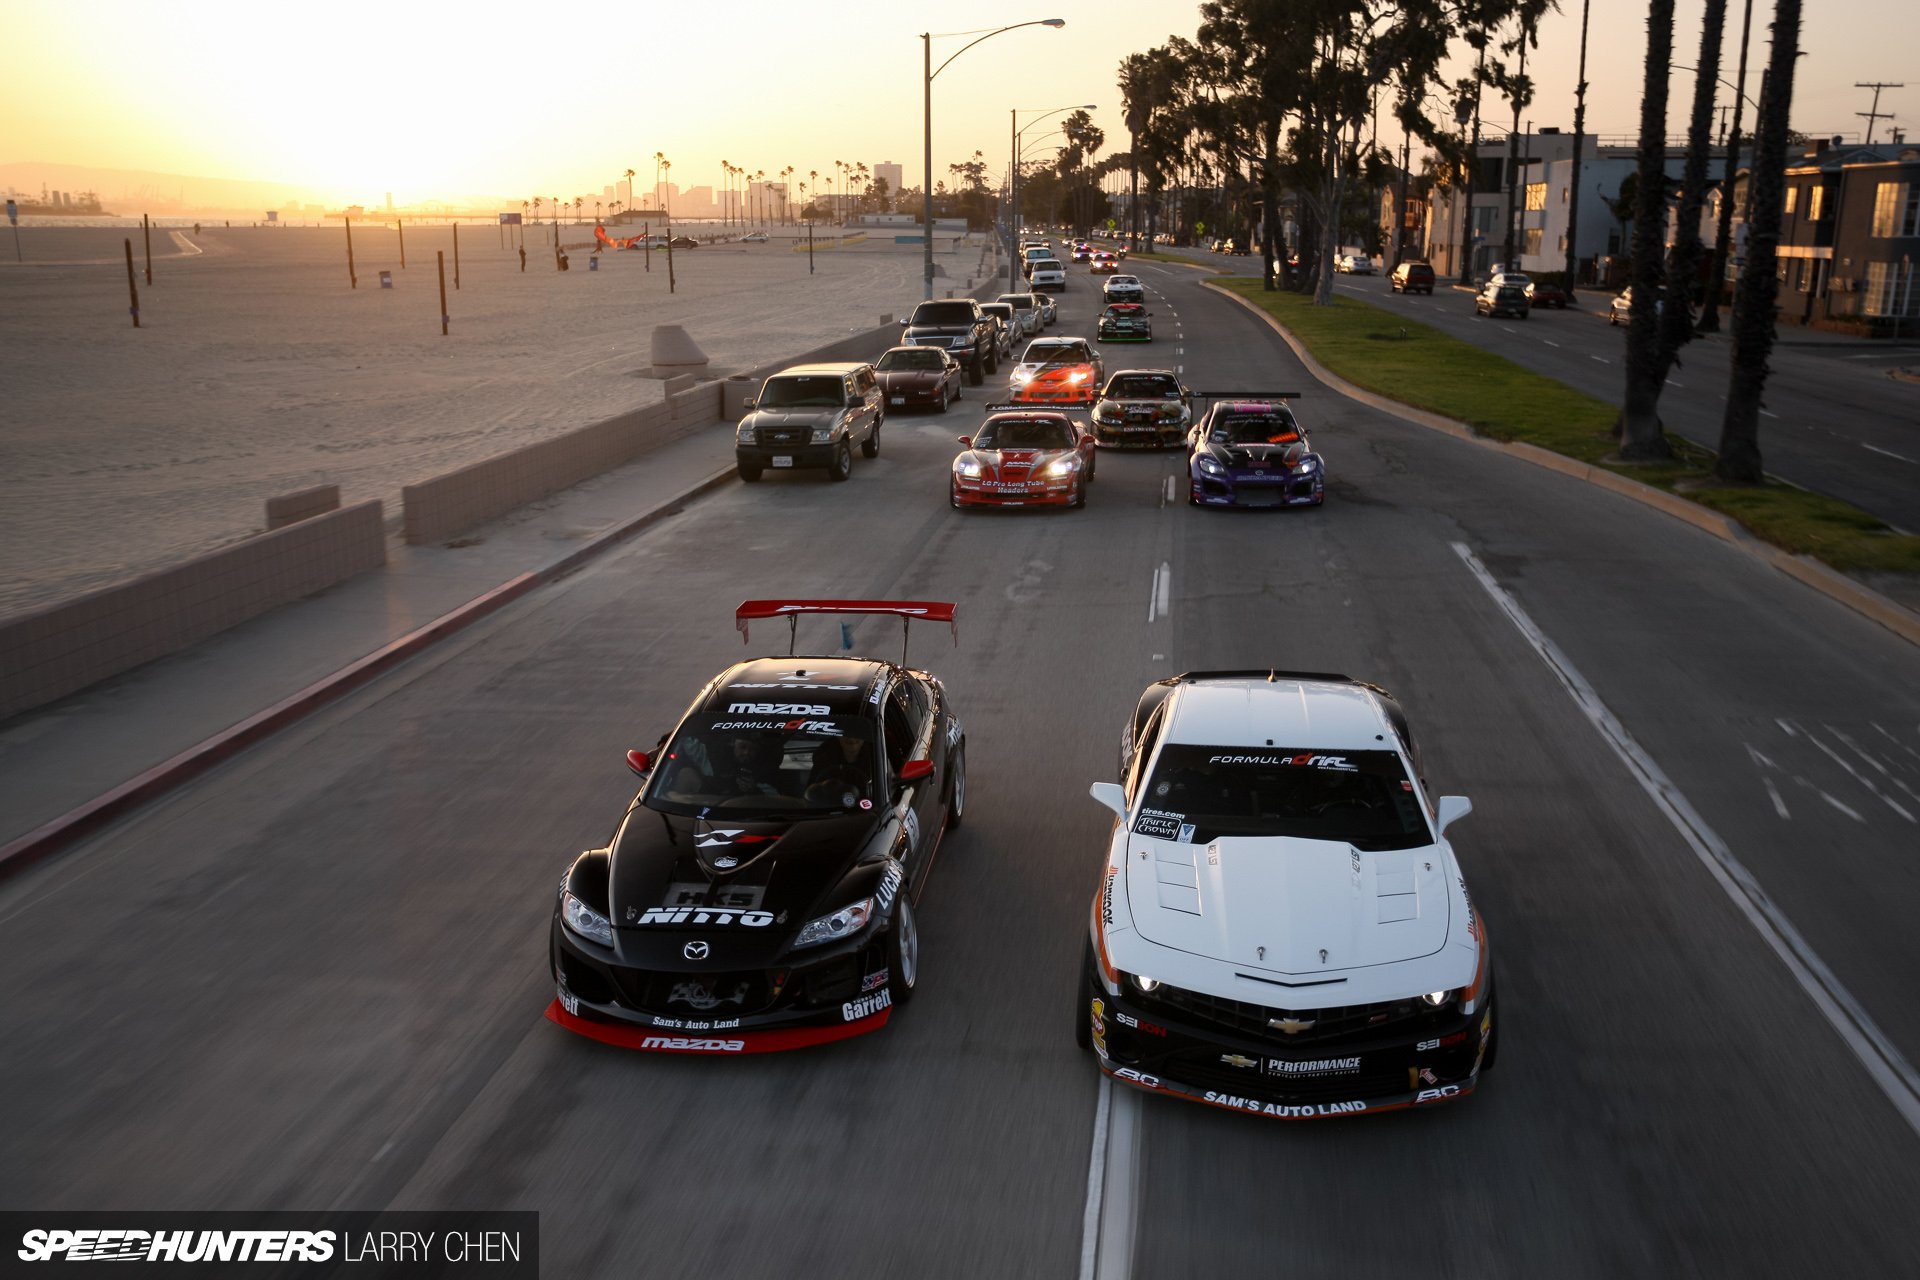 1920x1280 Wallpaper Cars Larry Chen Speedhunters Drift Collection 6 Wallpaper